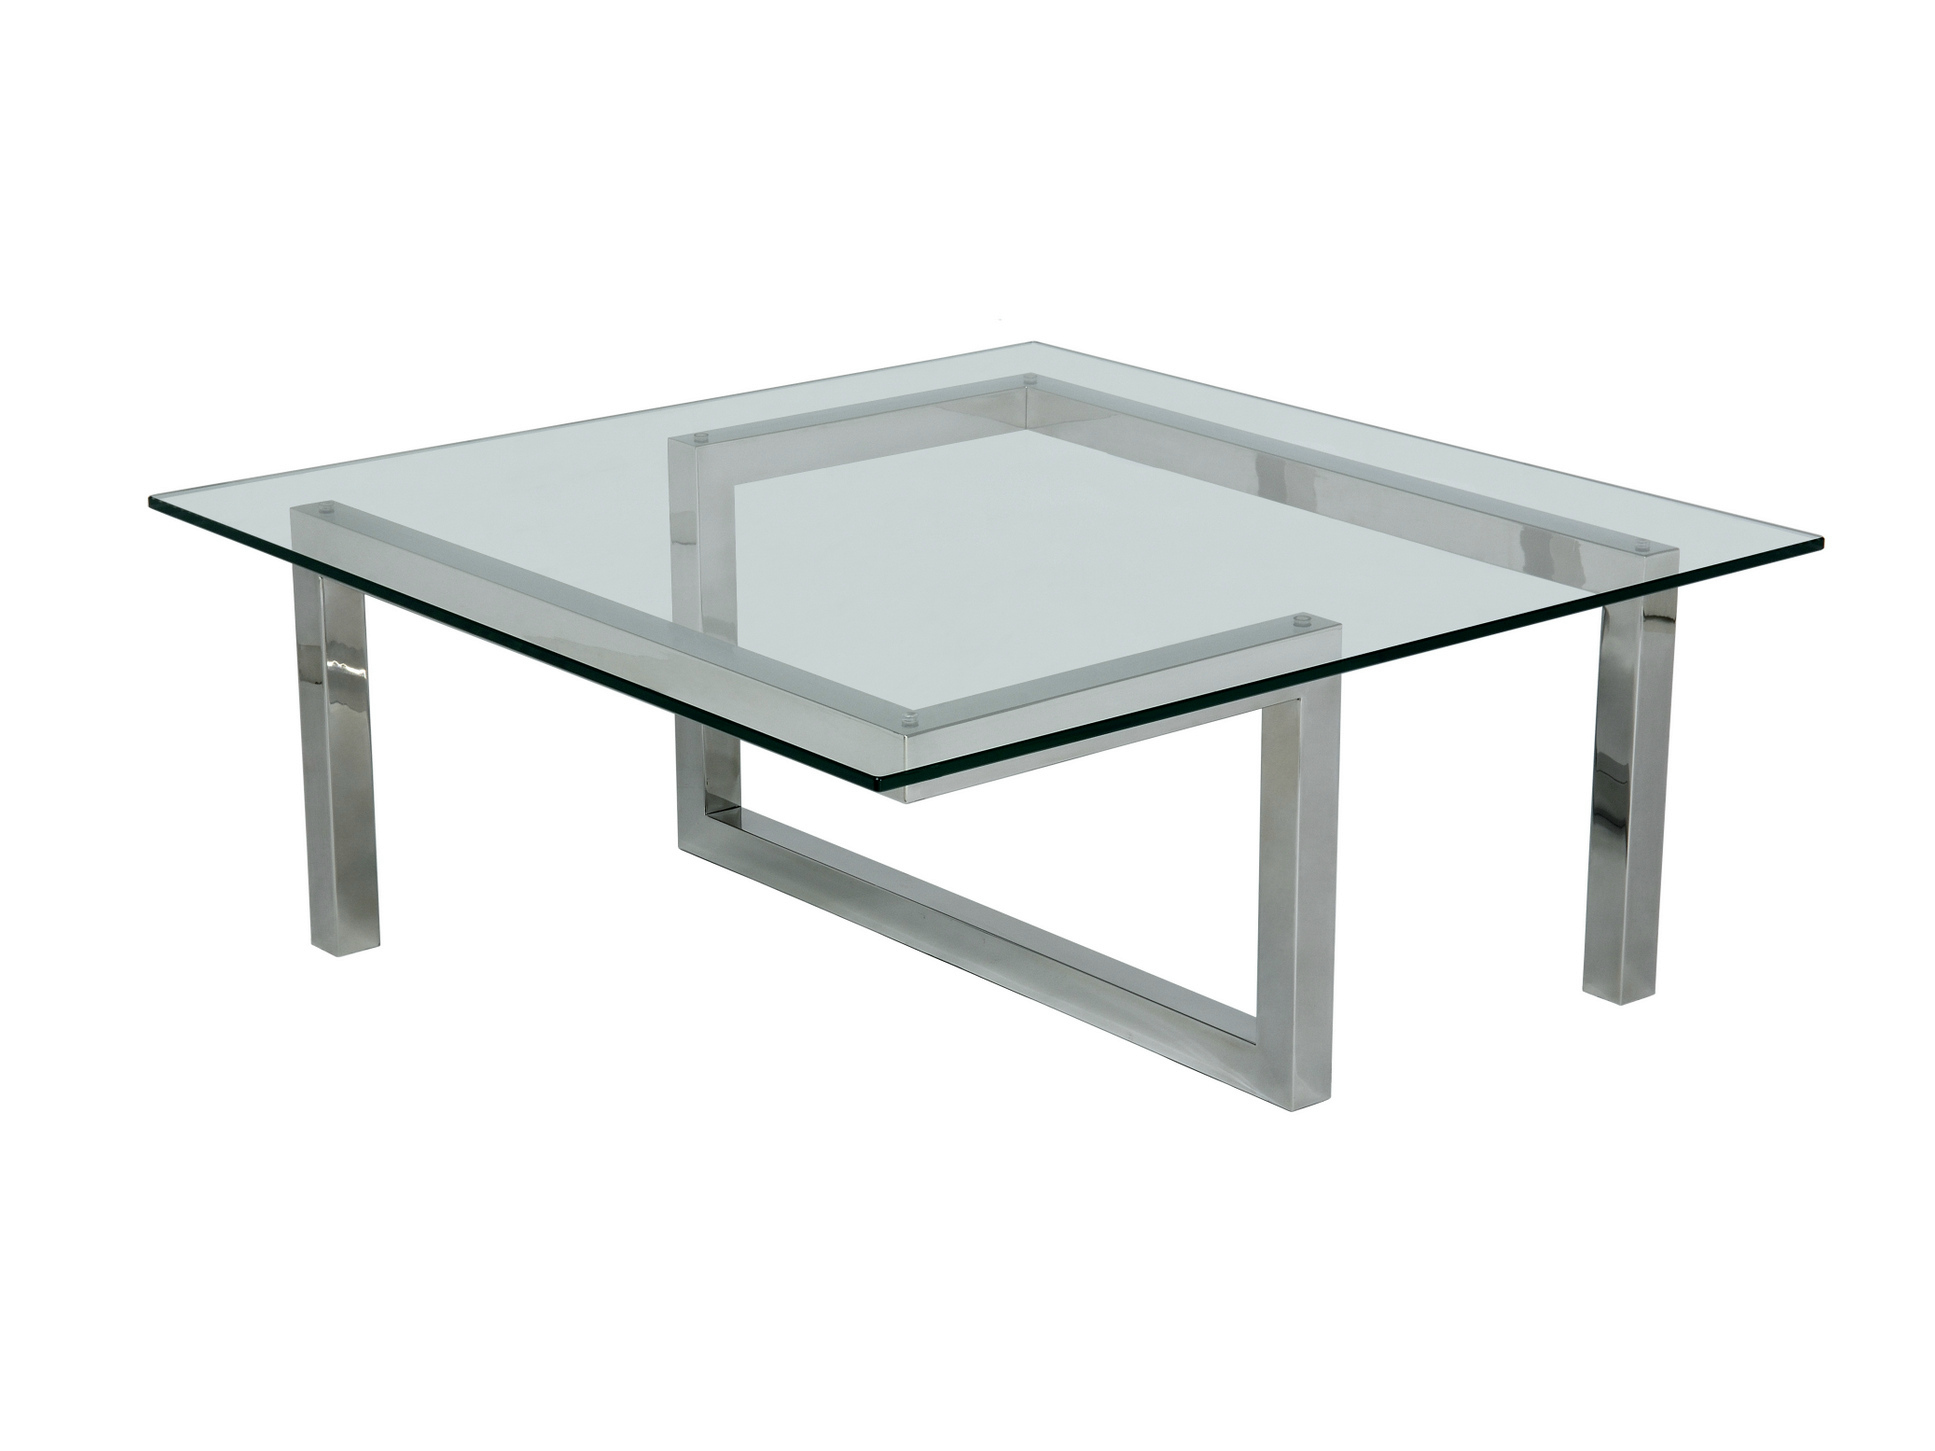 Image of: Low Glass Square Coffee Table